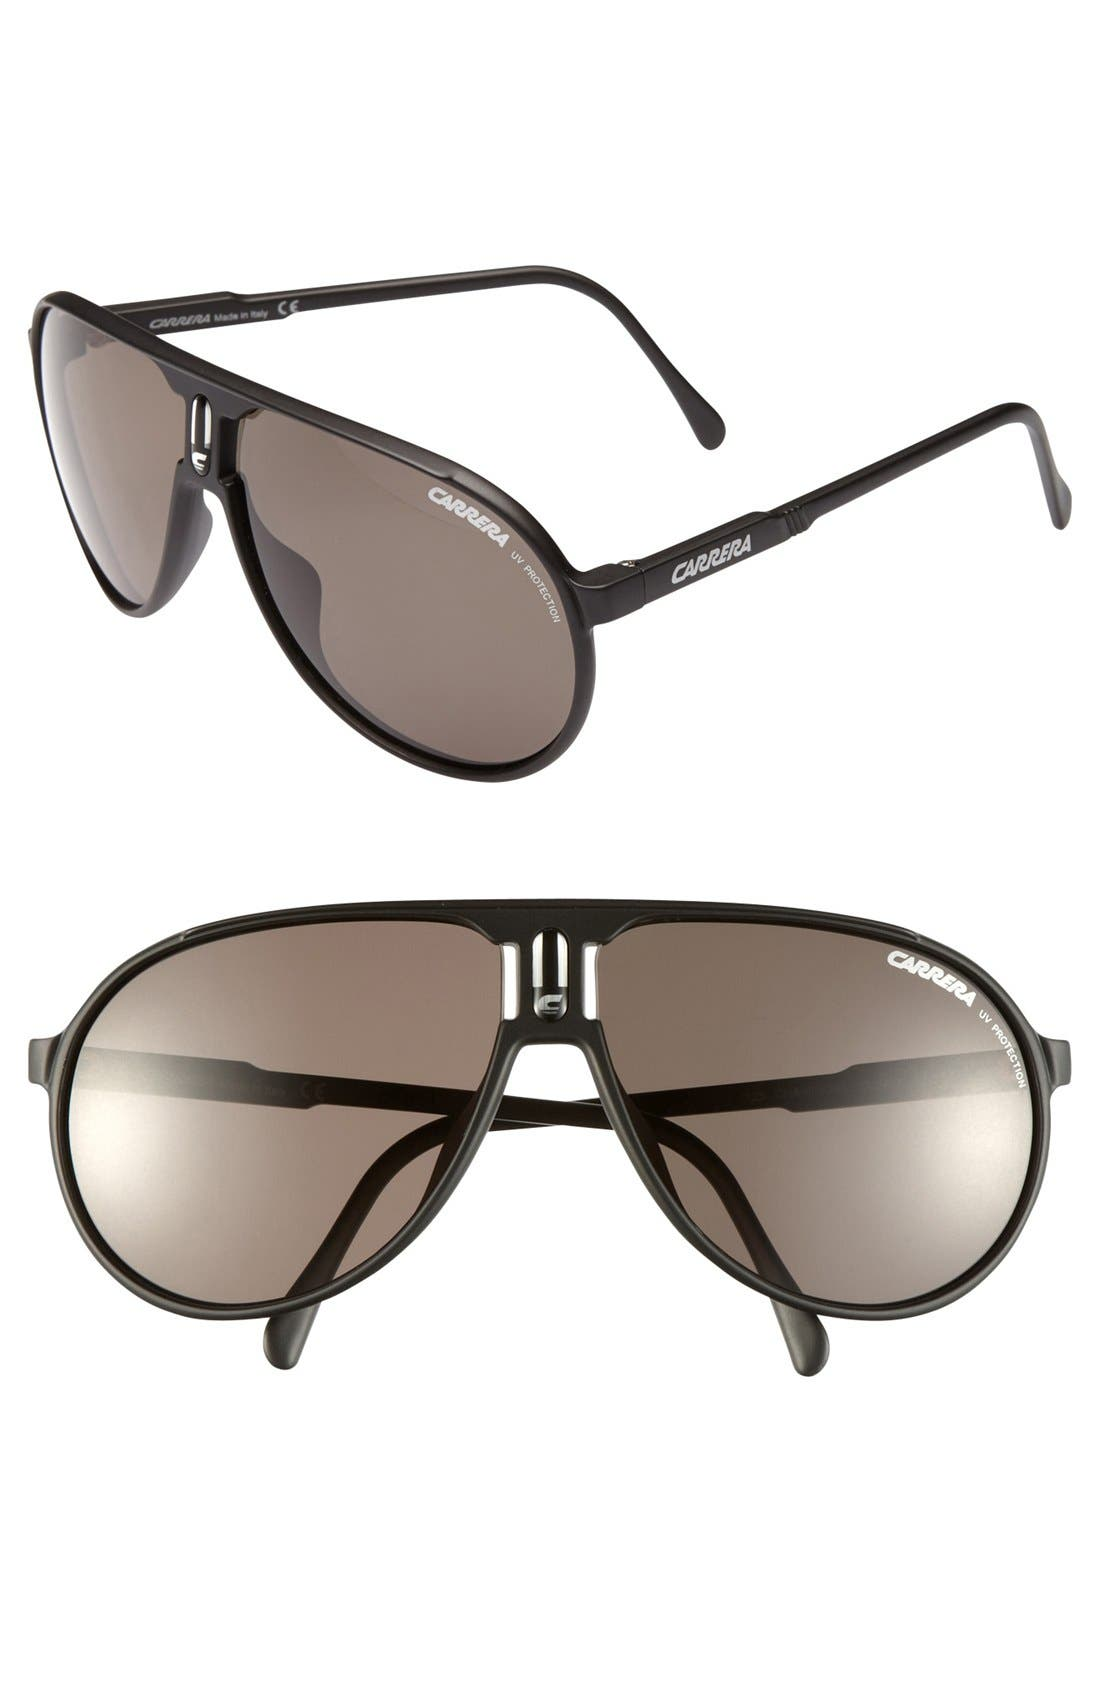 Main Image - Carrera Eyewear 62mm Aviator Sunglasses